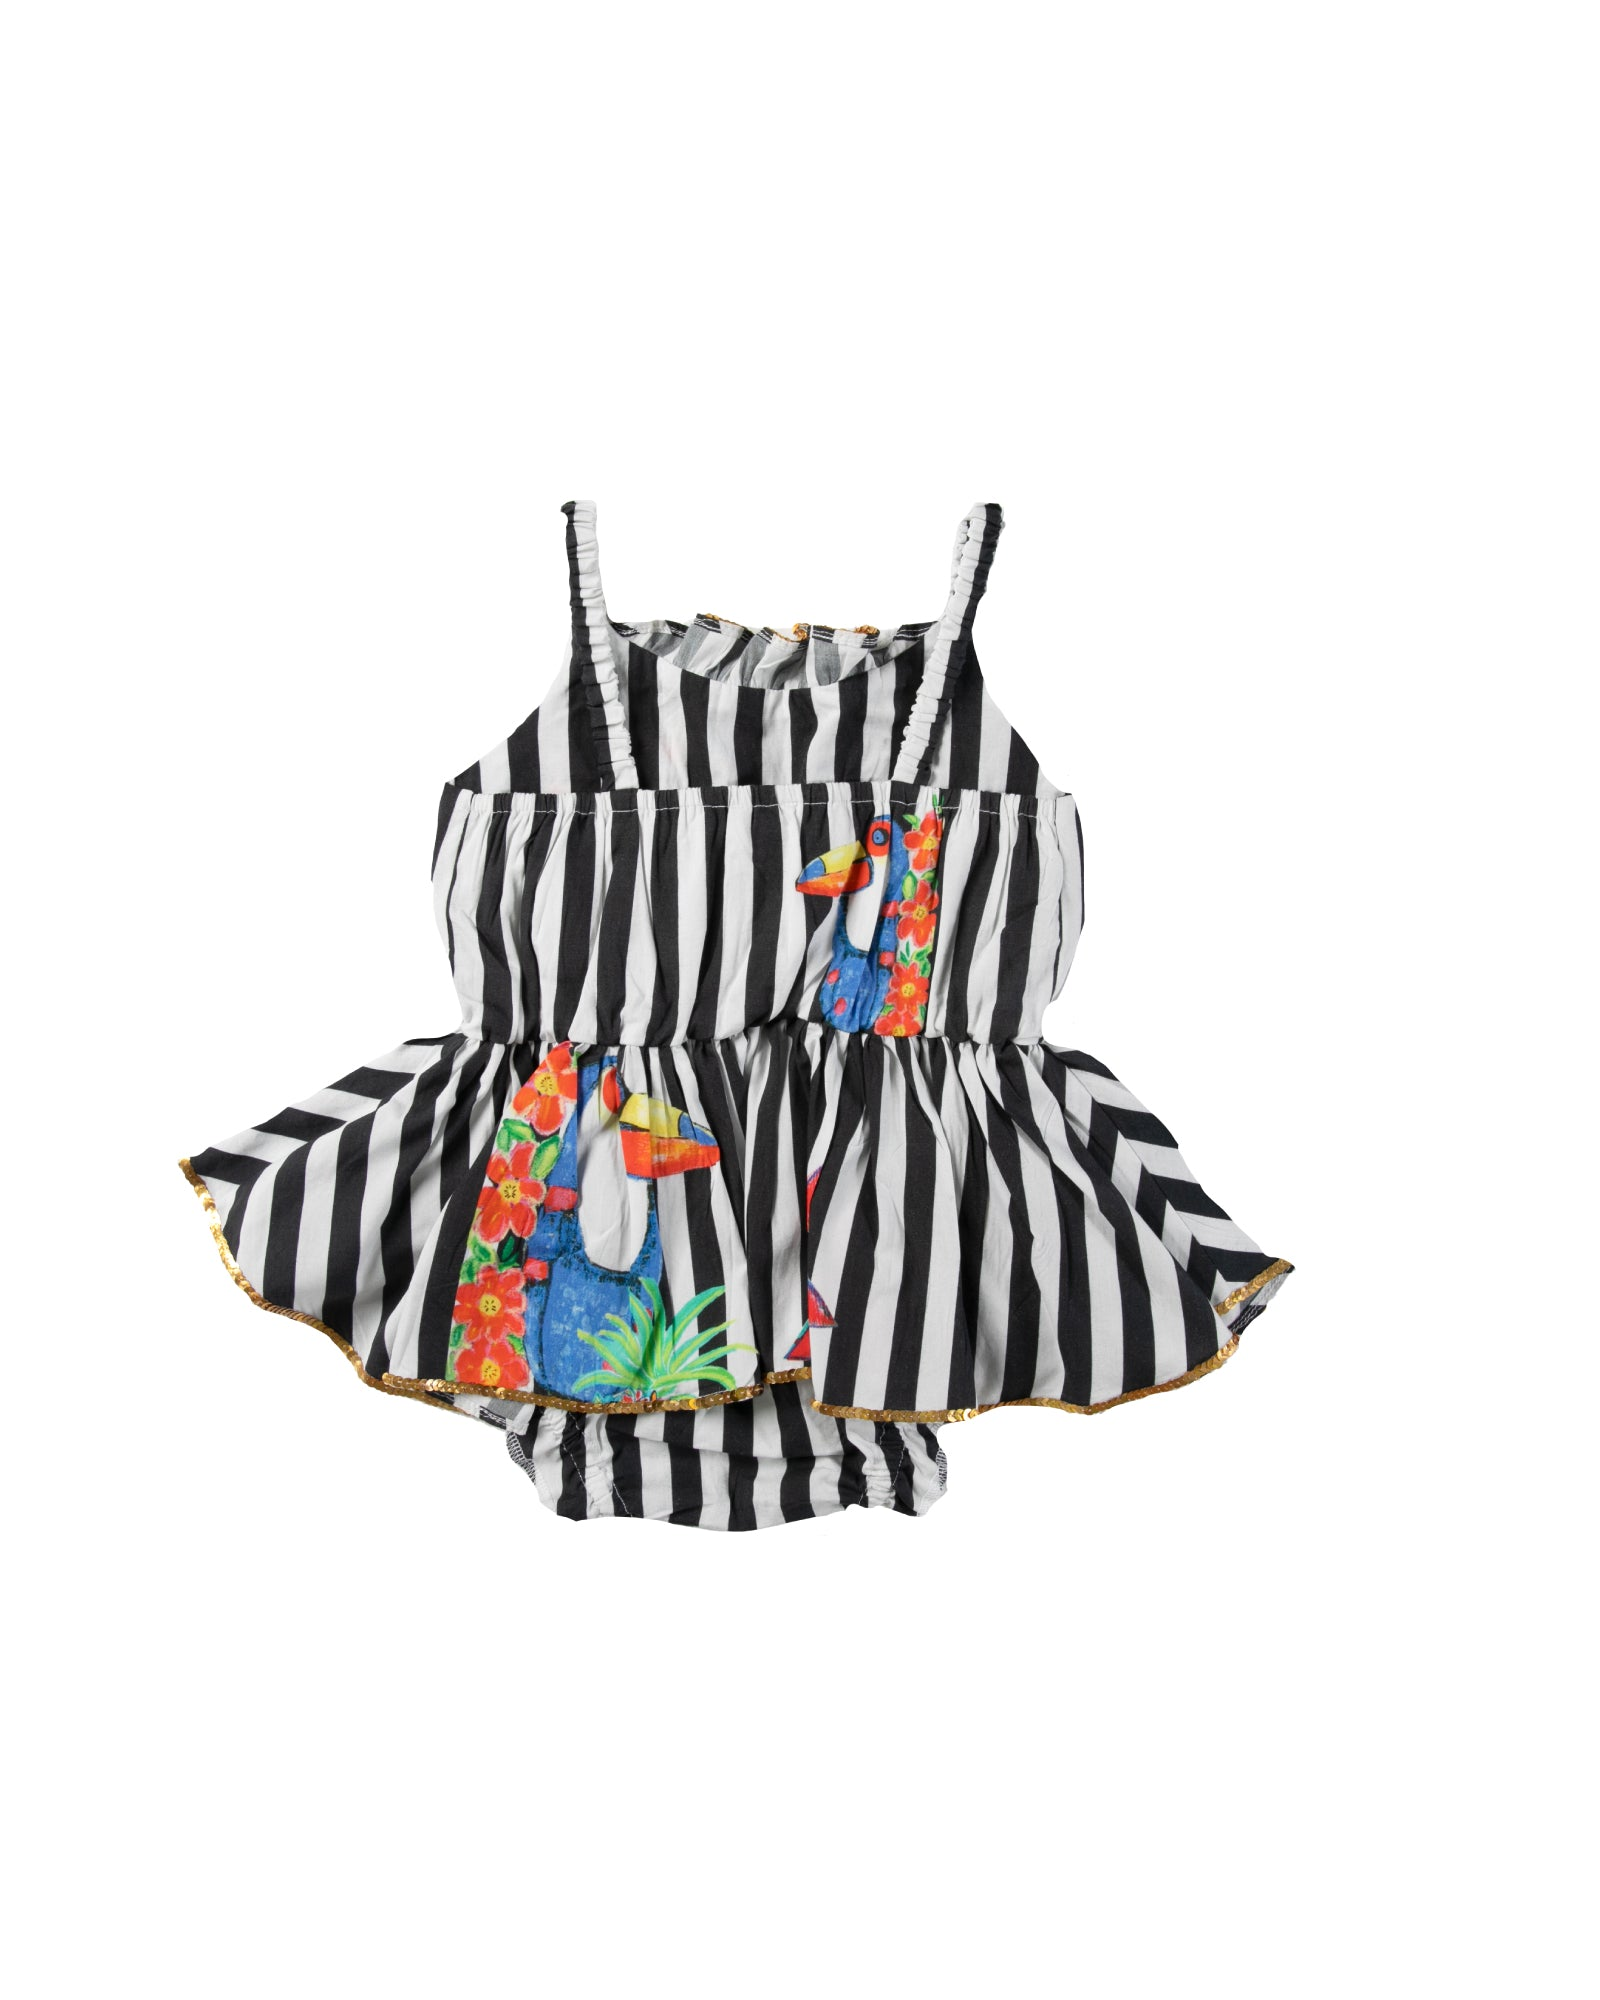 The Toucan Party Jump Dress